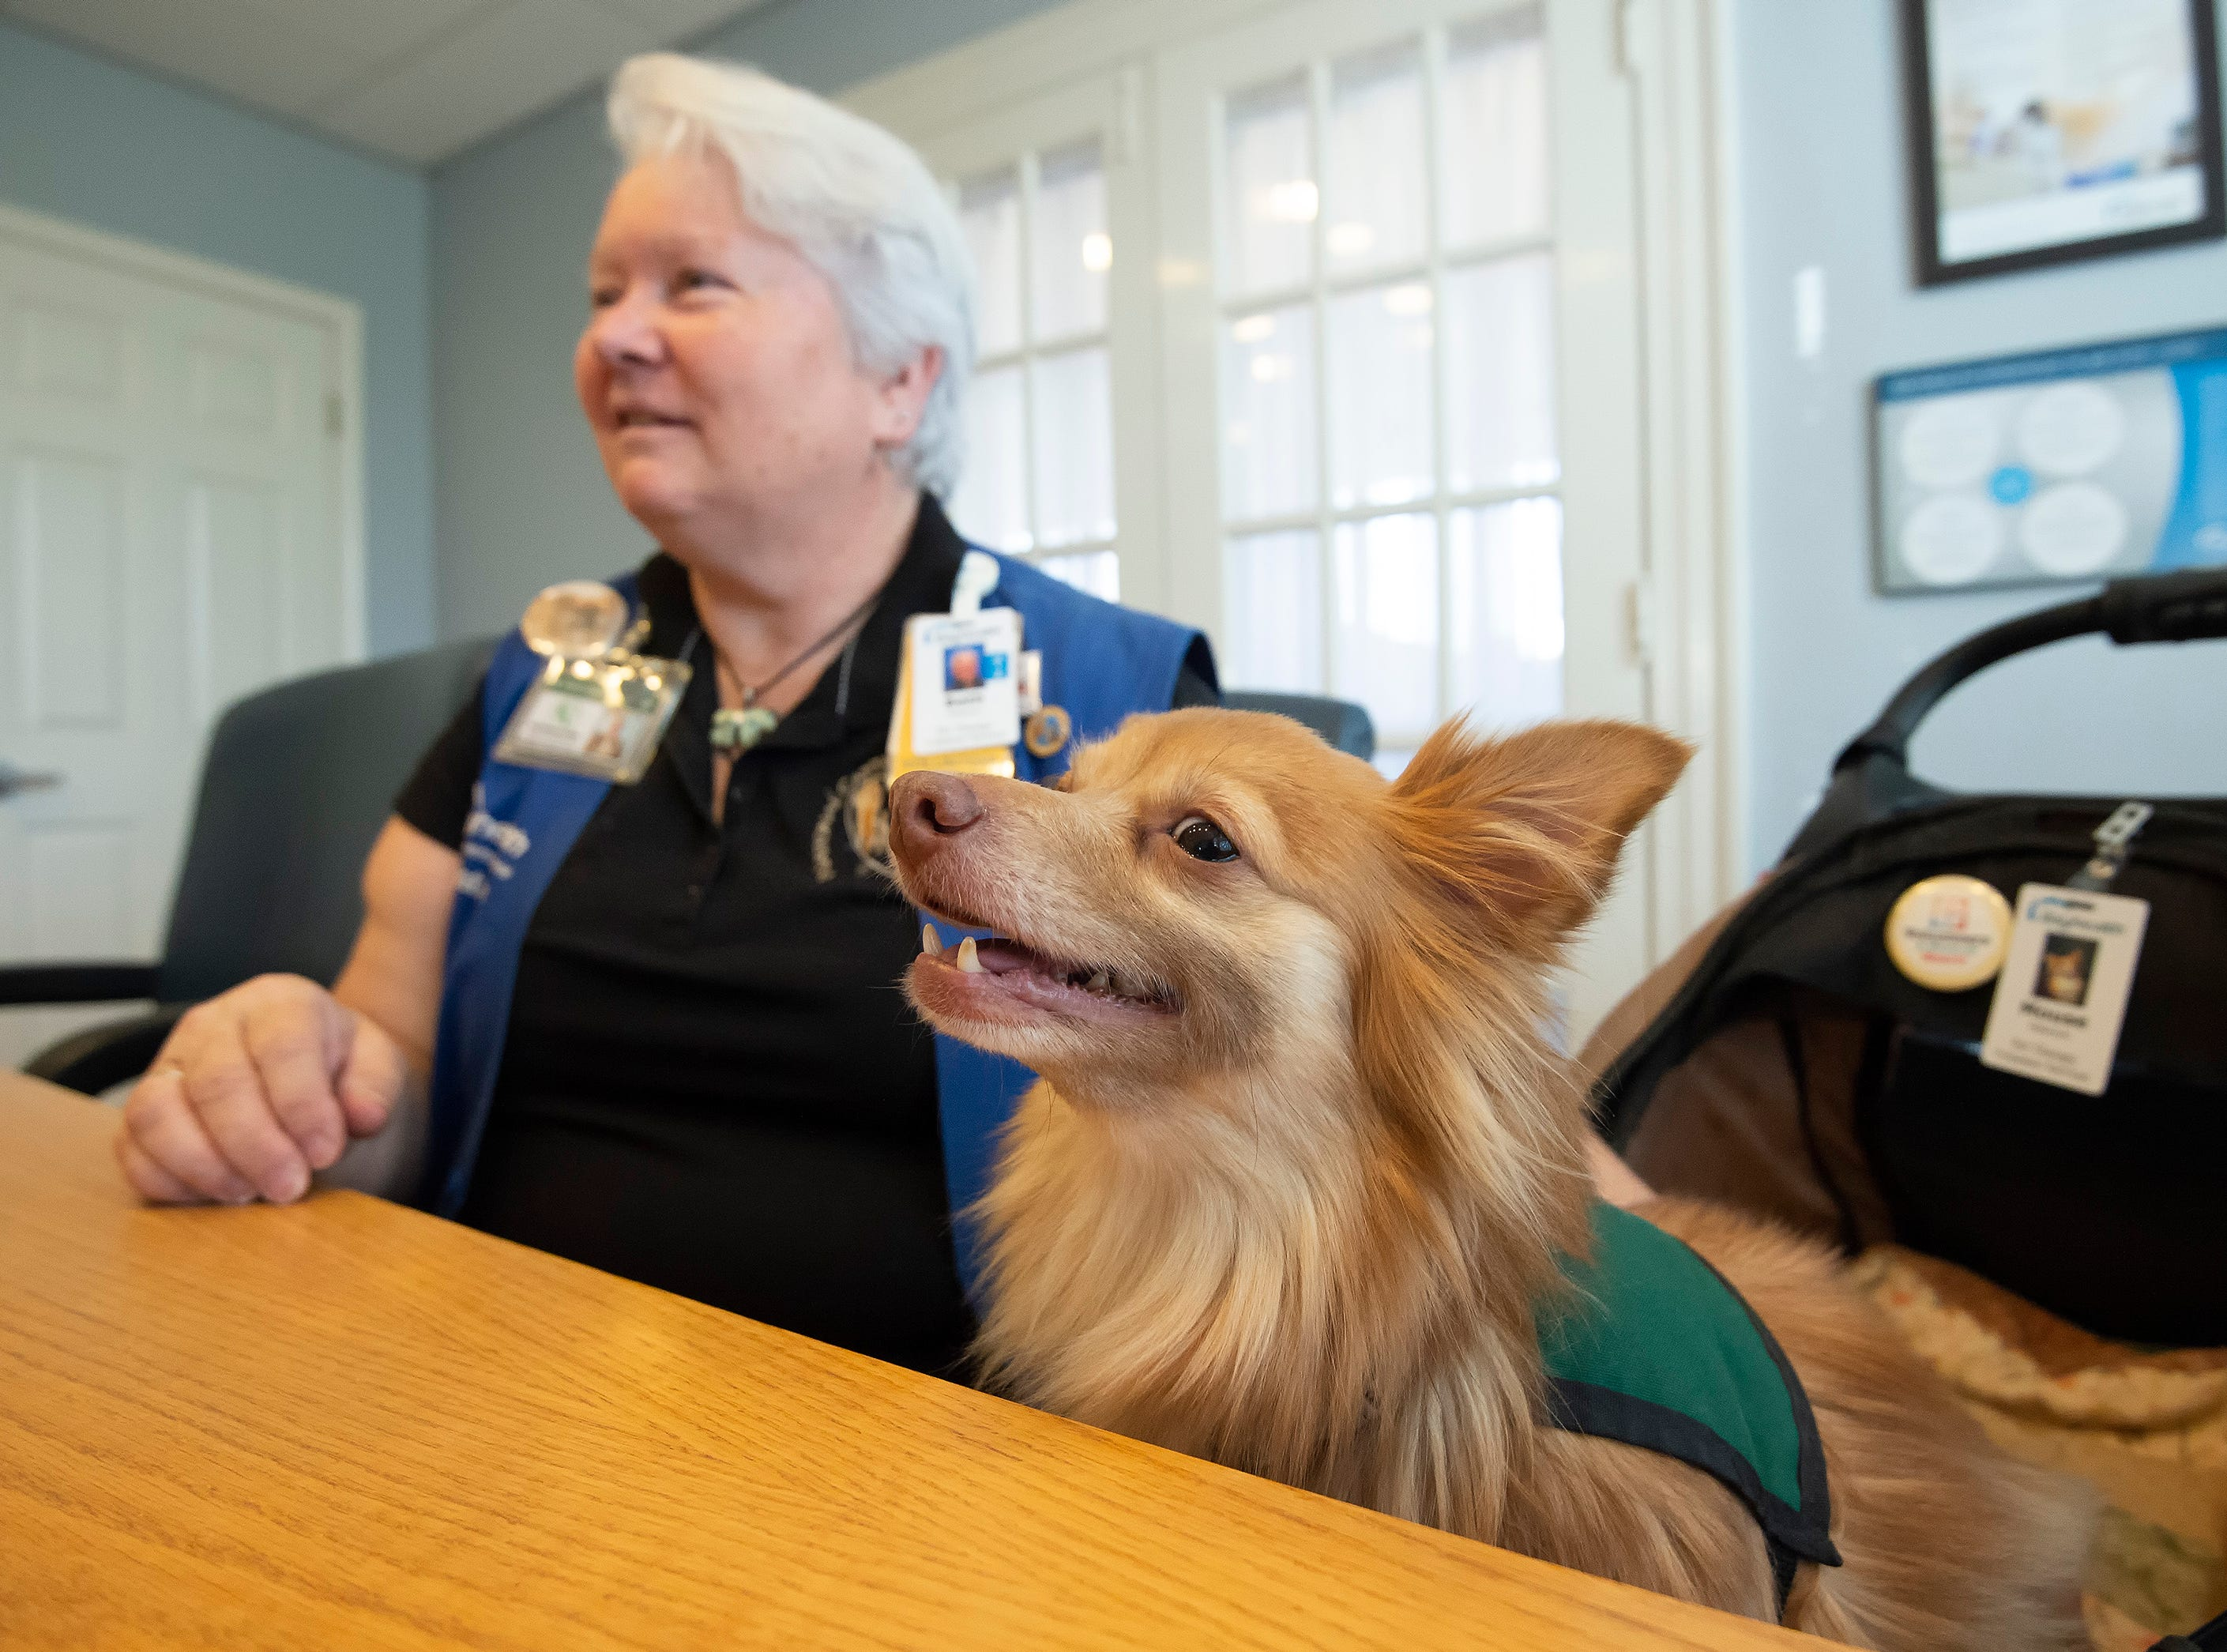 Beth Peterson and her dog, Mouse, who is a trained pet therapy dog, help to brighten the spirits of patients at Bayhealth Kent General Hospital in Dover.